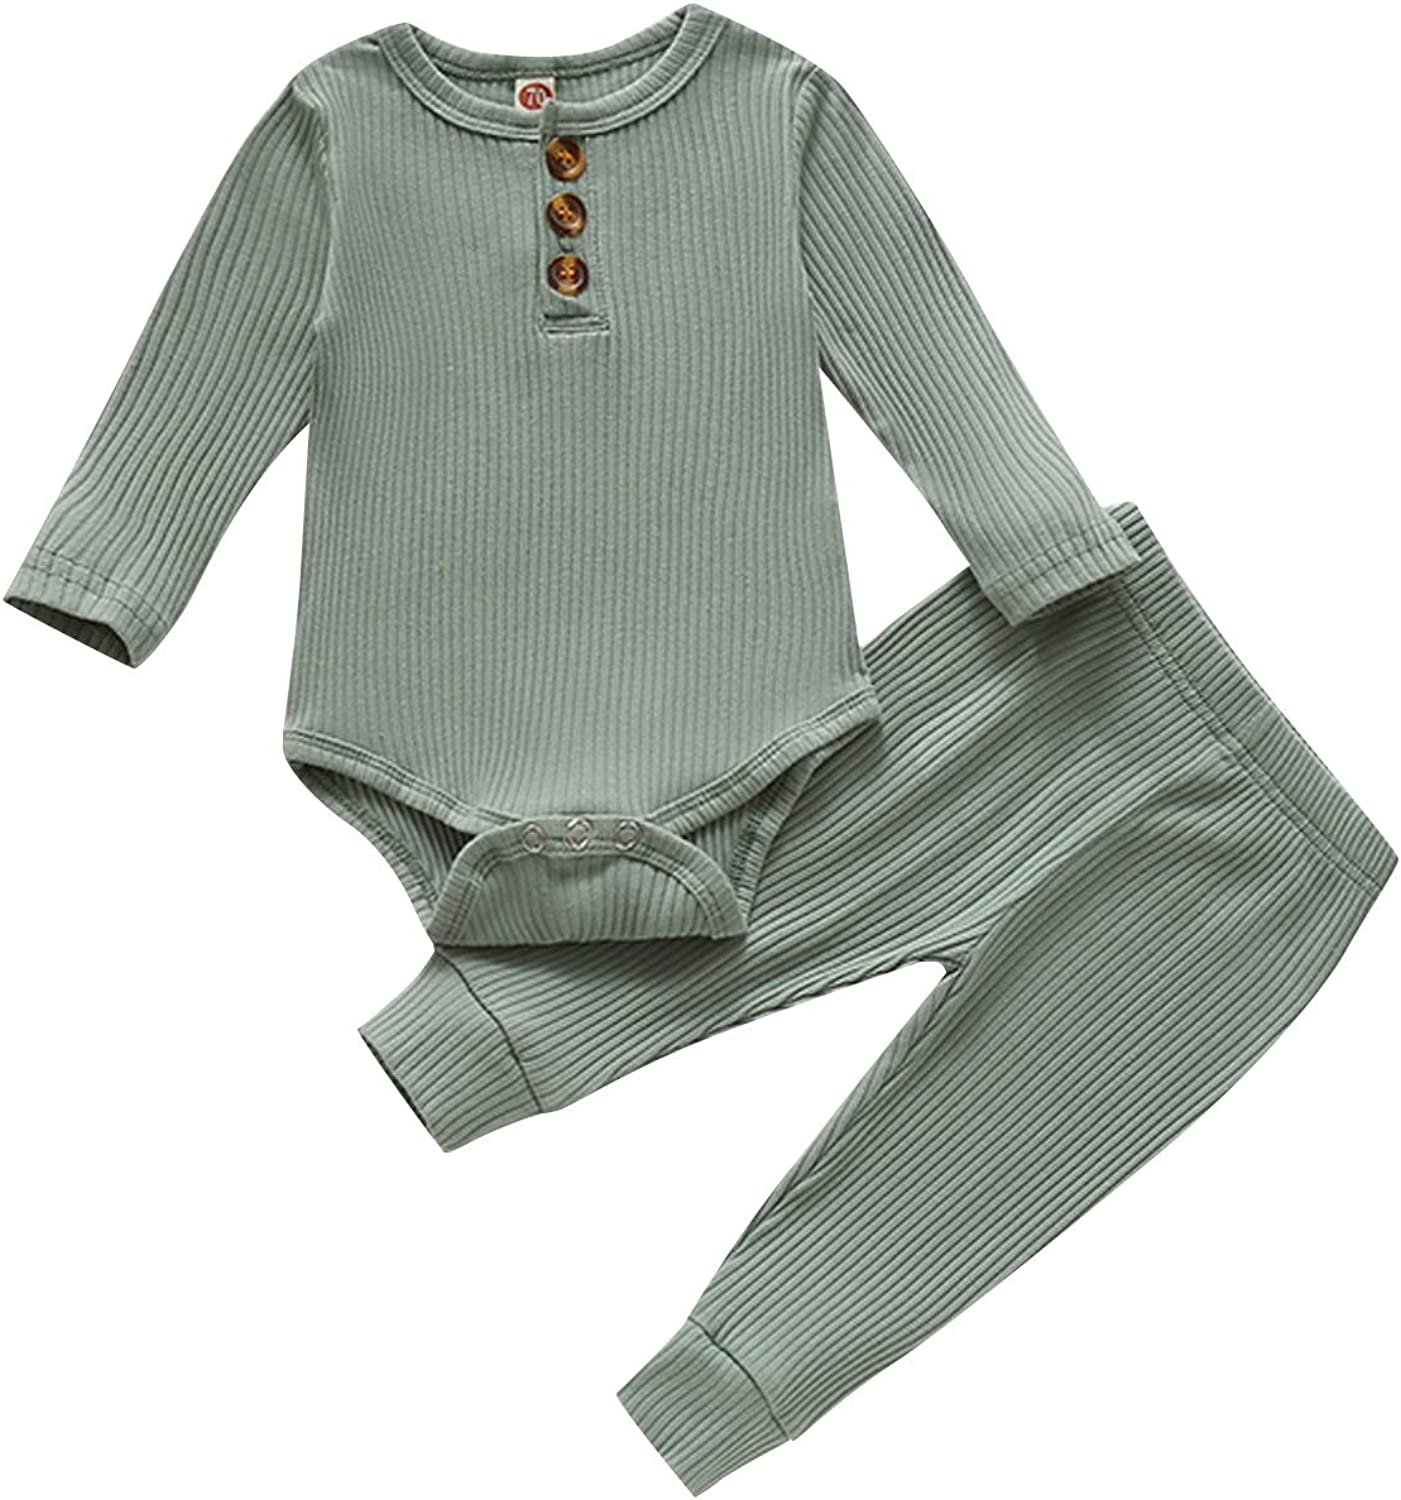 Baby Girl Clothes Newborn Ribbed Romper Pants Infant Girl Outfits Baby Girl's Pant Set